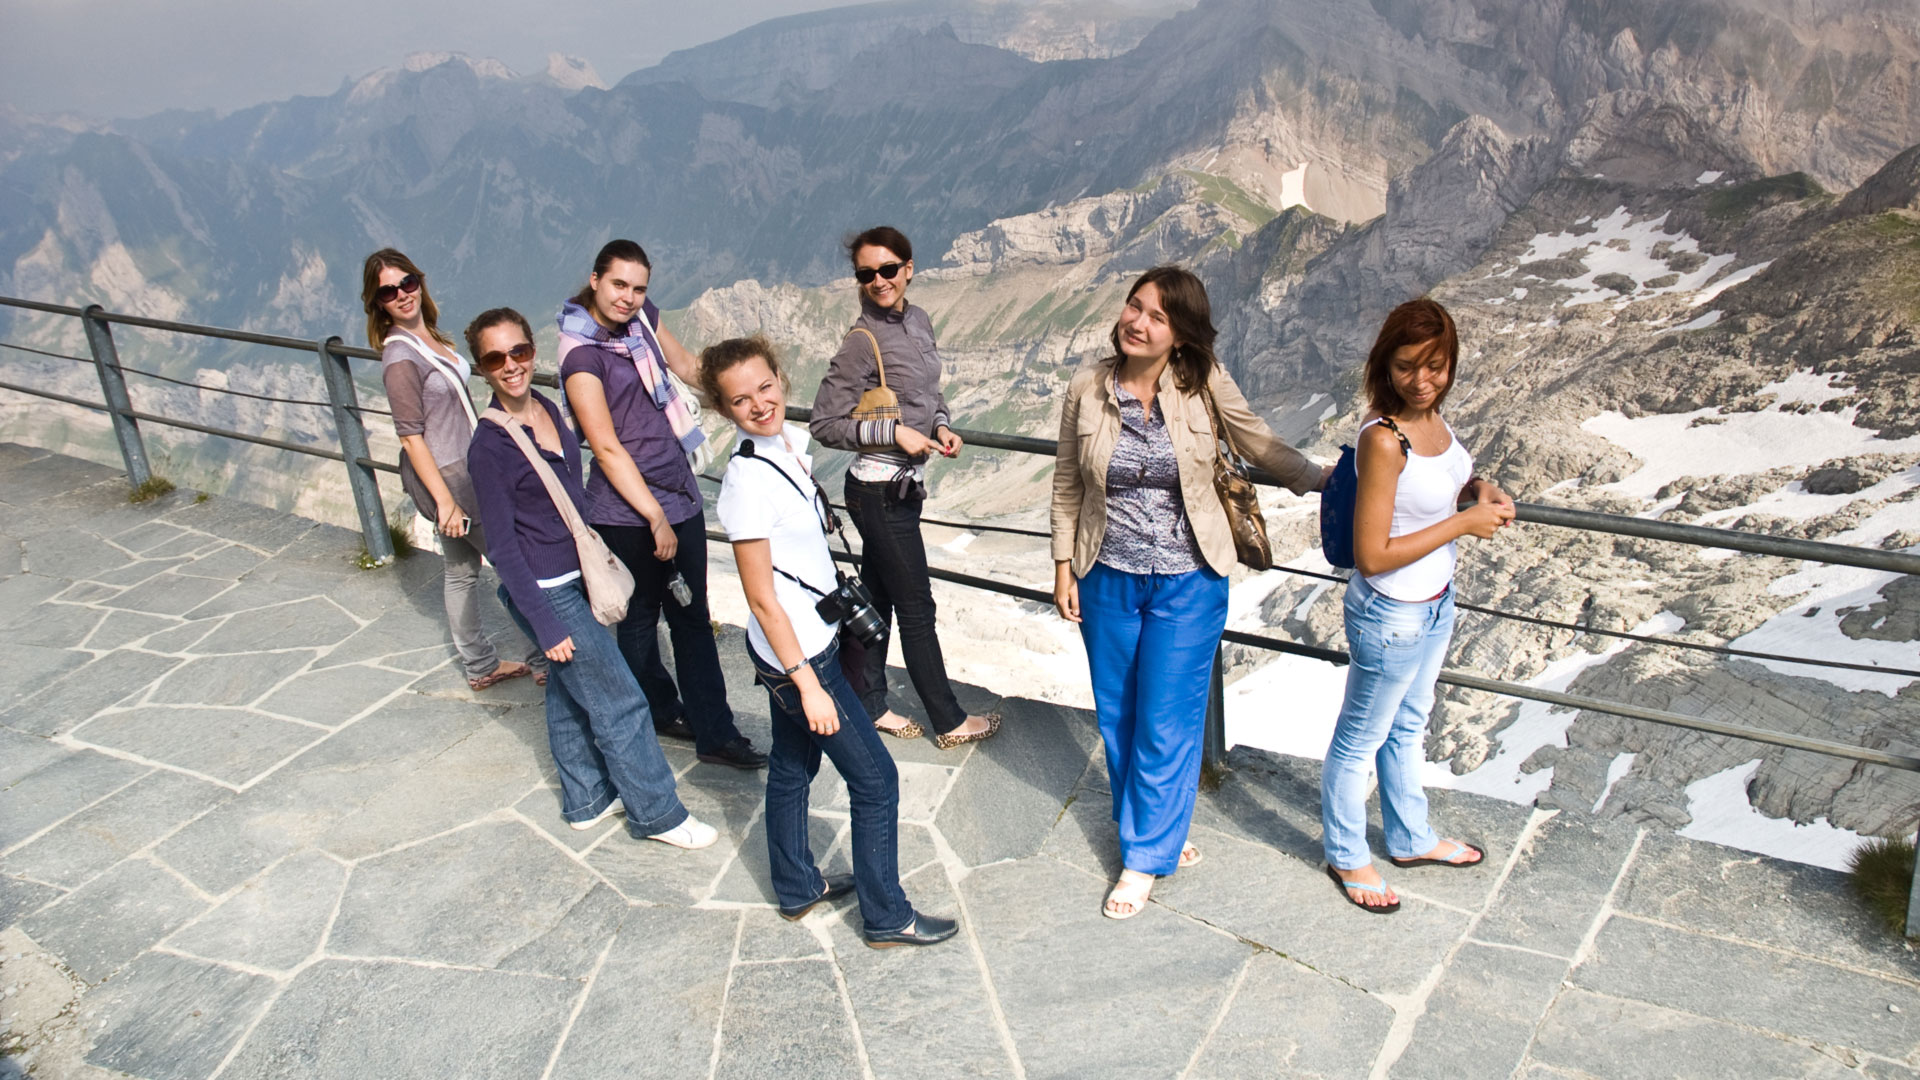 Students enjoying the view from Mount Säntis in Switzerland